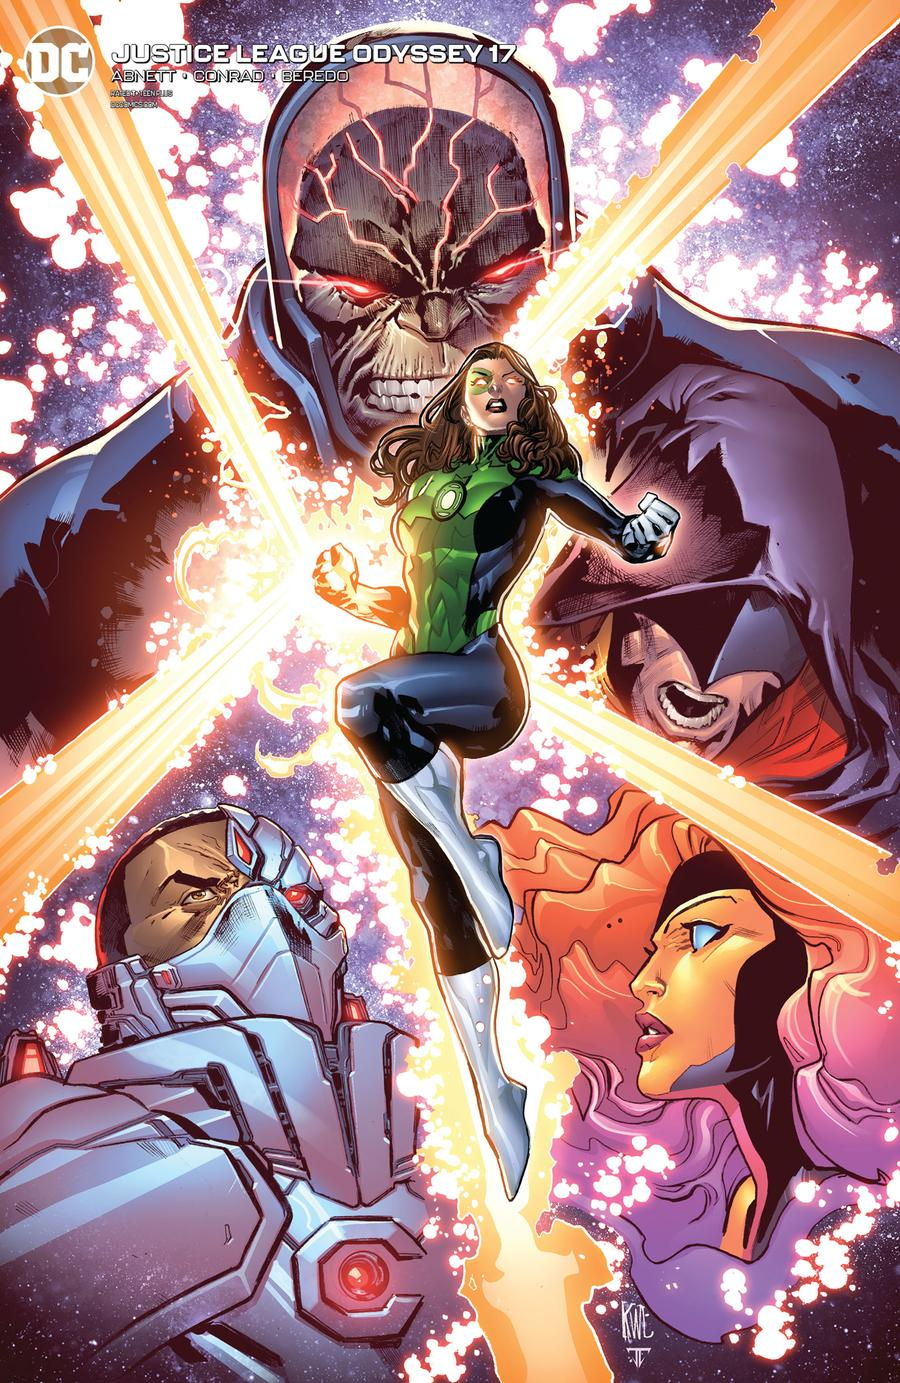 Justice League Odyssey #17 Cover B Variant Ken Lashley Cover